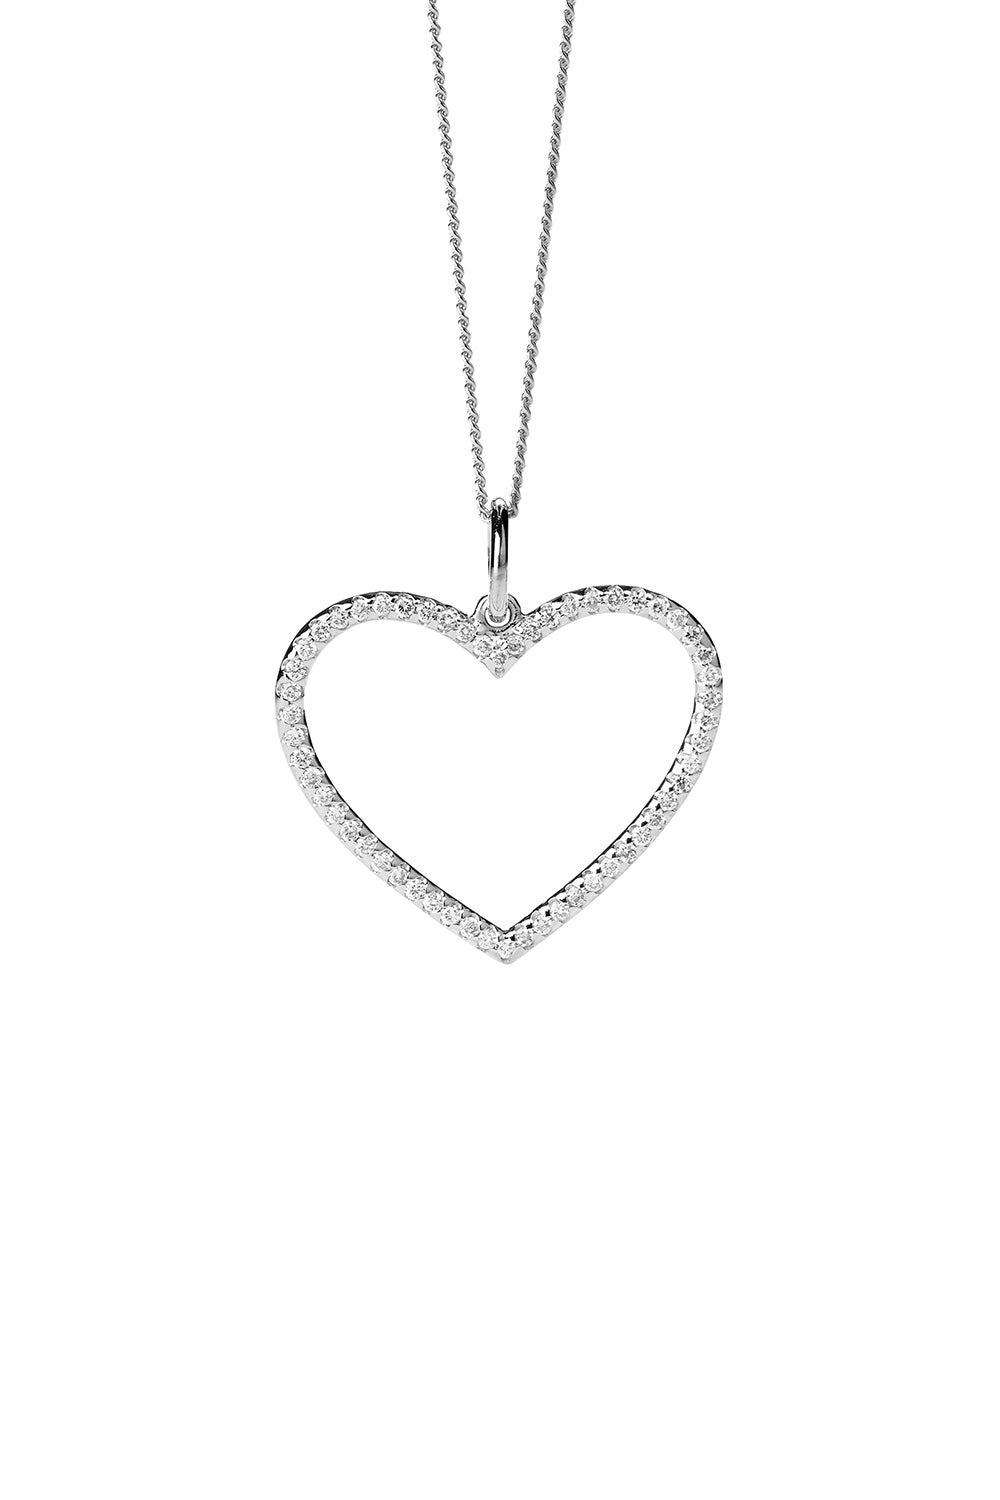 Diamond Heart Necklace, White Gold, .31ct Diamond